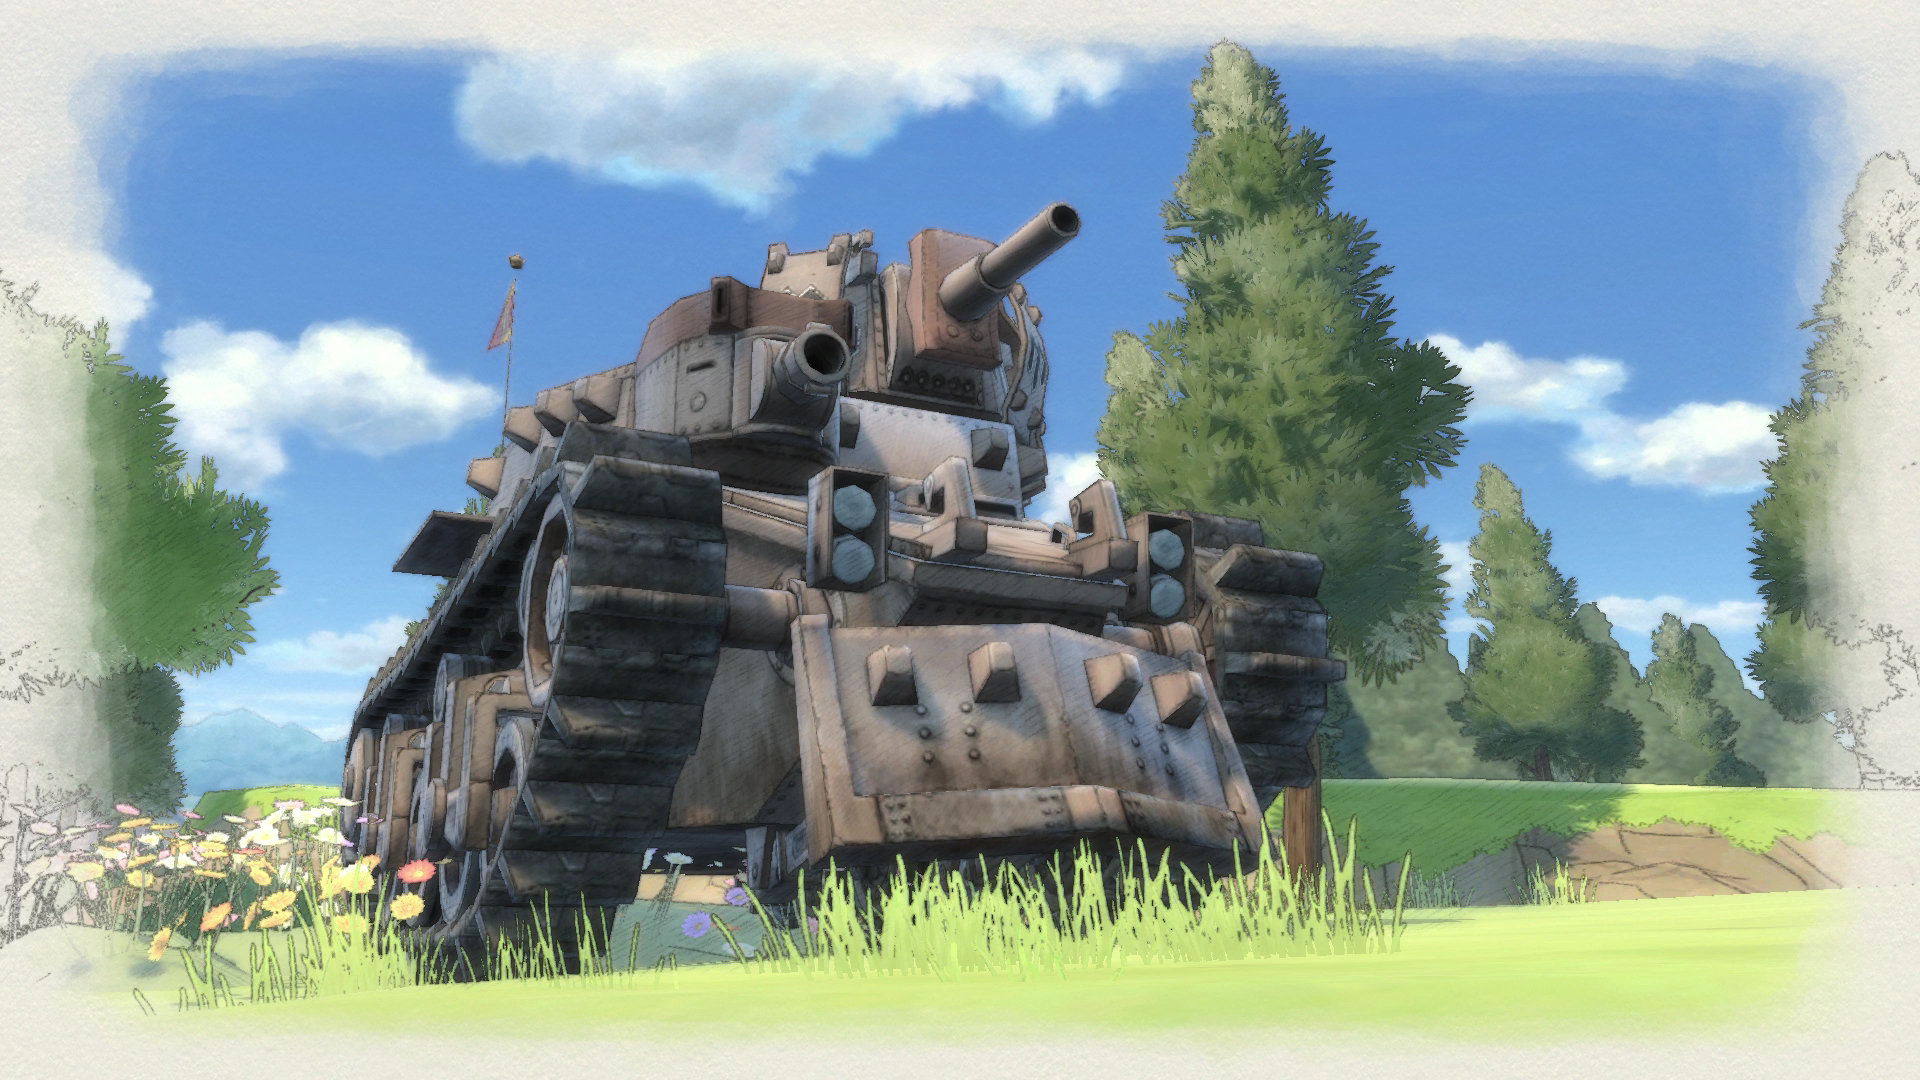 https://media.playstation.com/is/image/SCEA/valkyria-chronicles-4-screen-02-ps4-us-12apr18?$MediaCarousel_Original$